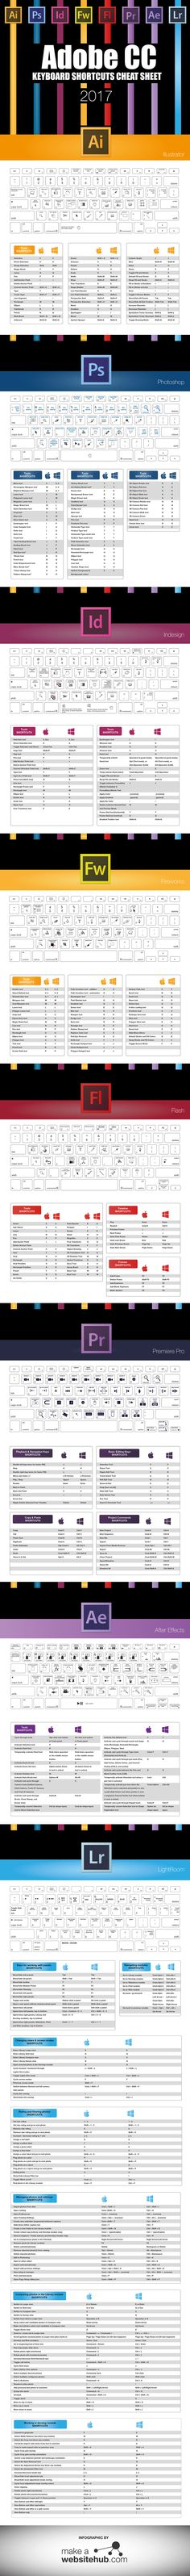 2017 Adobe CC Keyboard Shortcuts Cheat Sheet